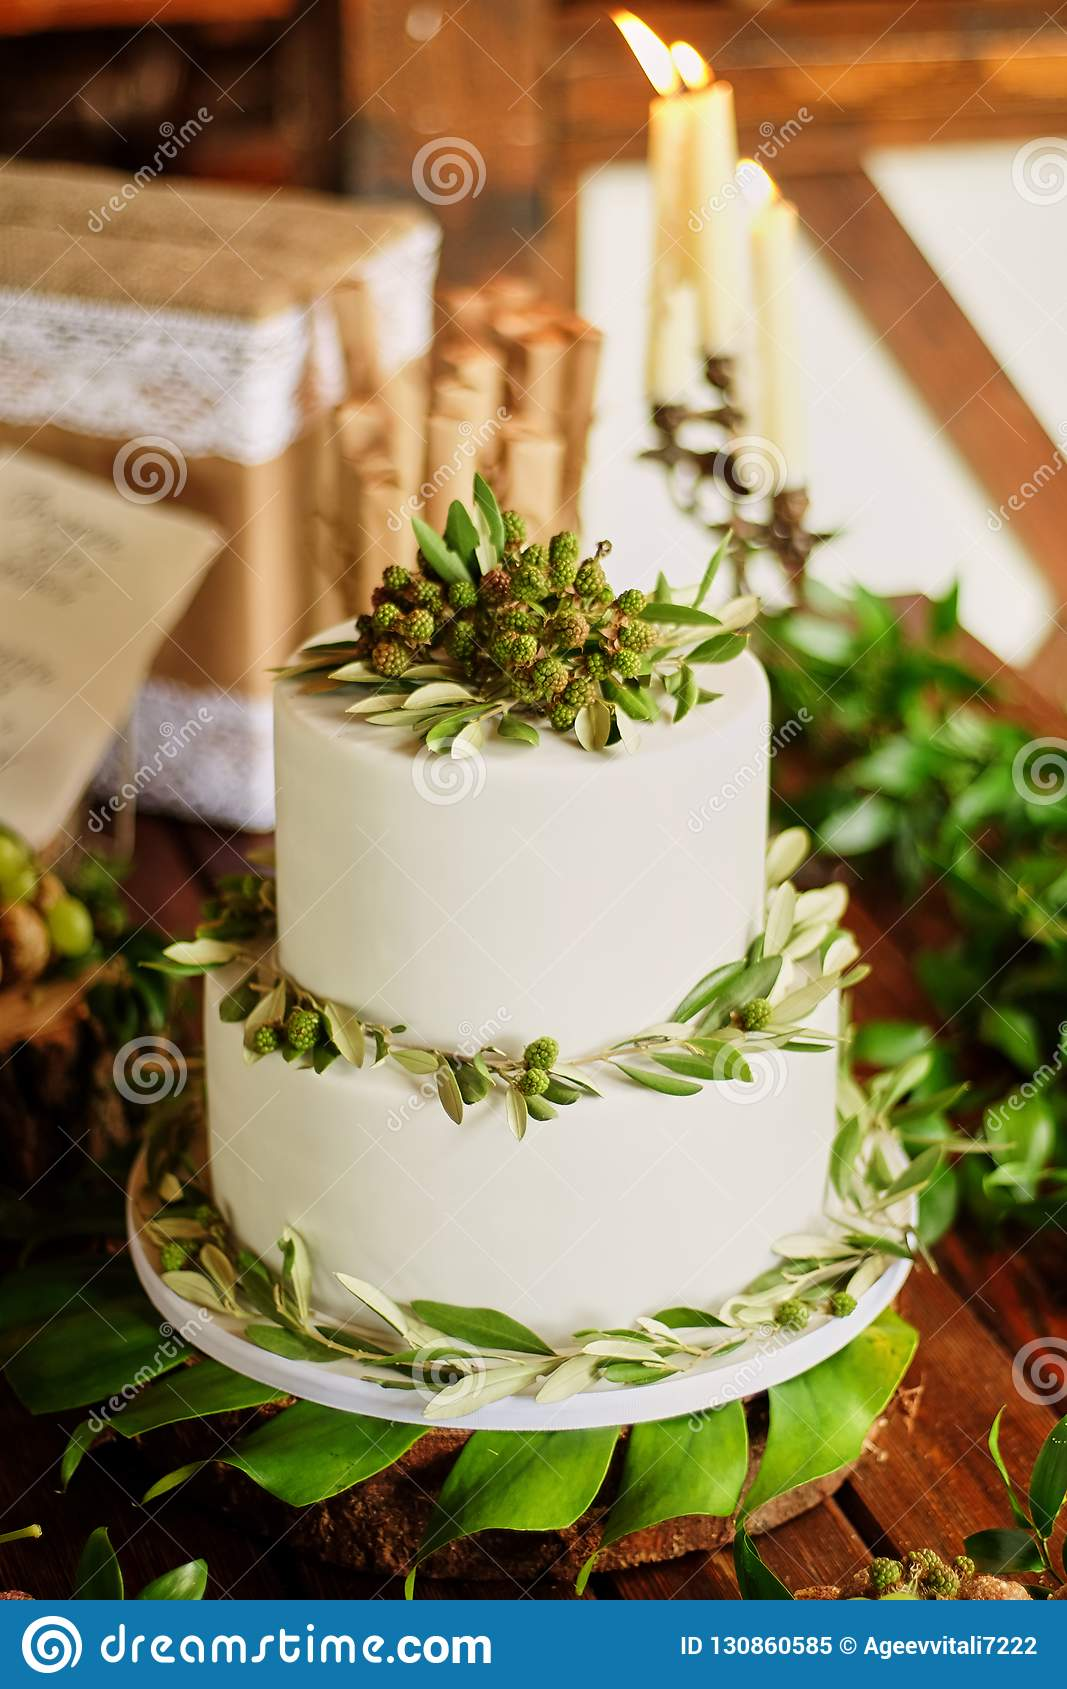 Elegant wedding cake with flowers and decor from green berries. Vegetarian sweets